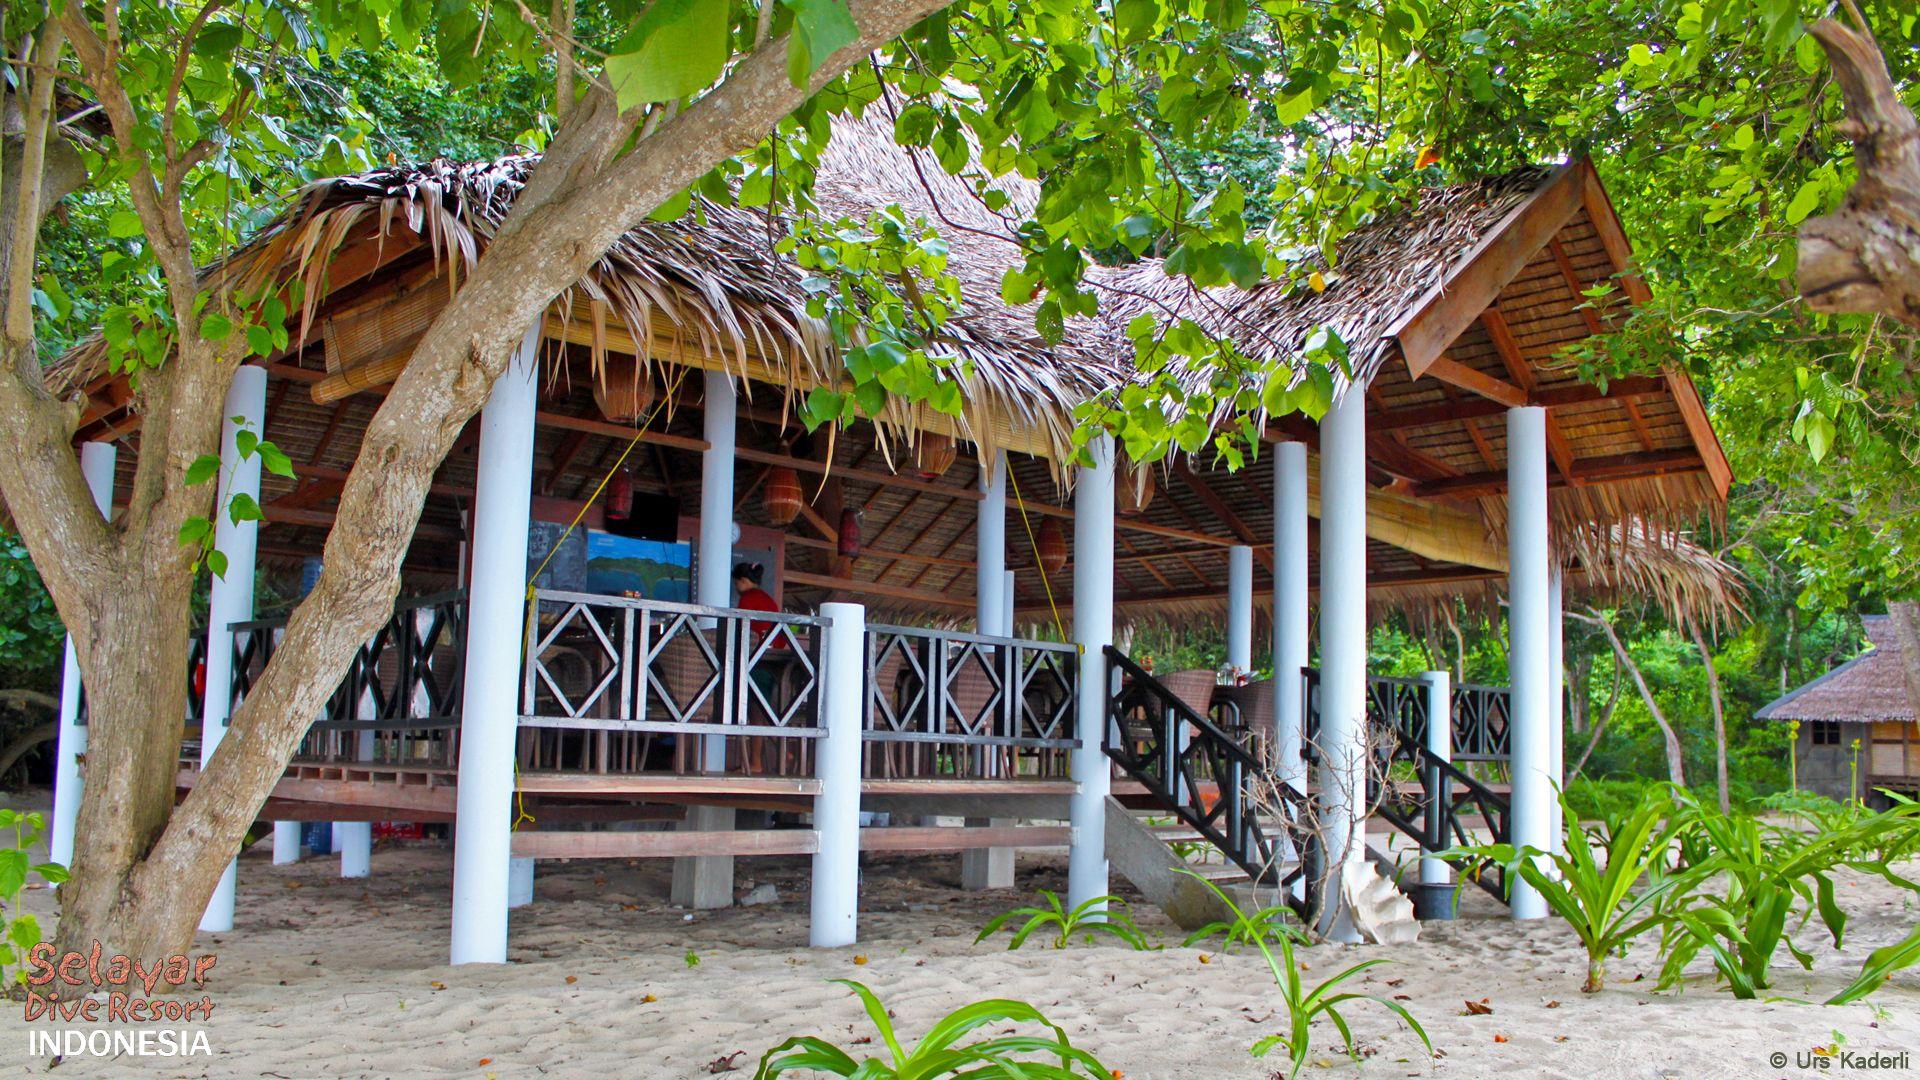 Beach Restaurant Indonesia Selayar Dive Resort Indonesia